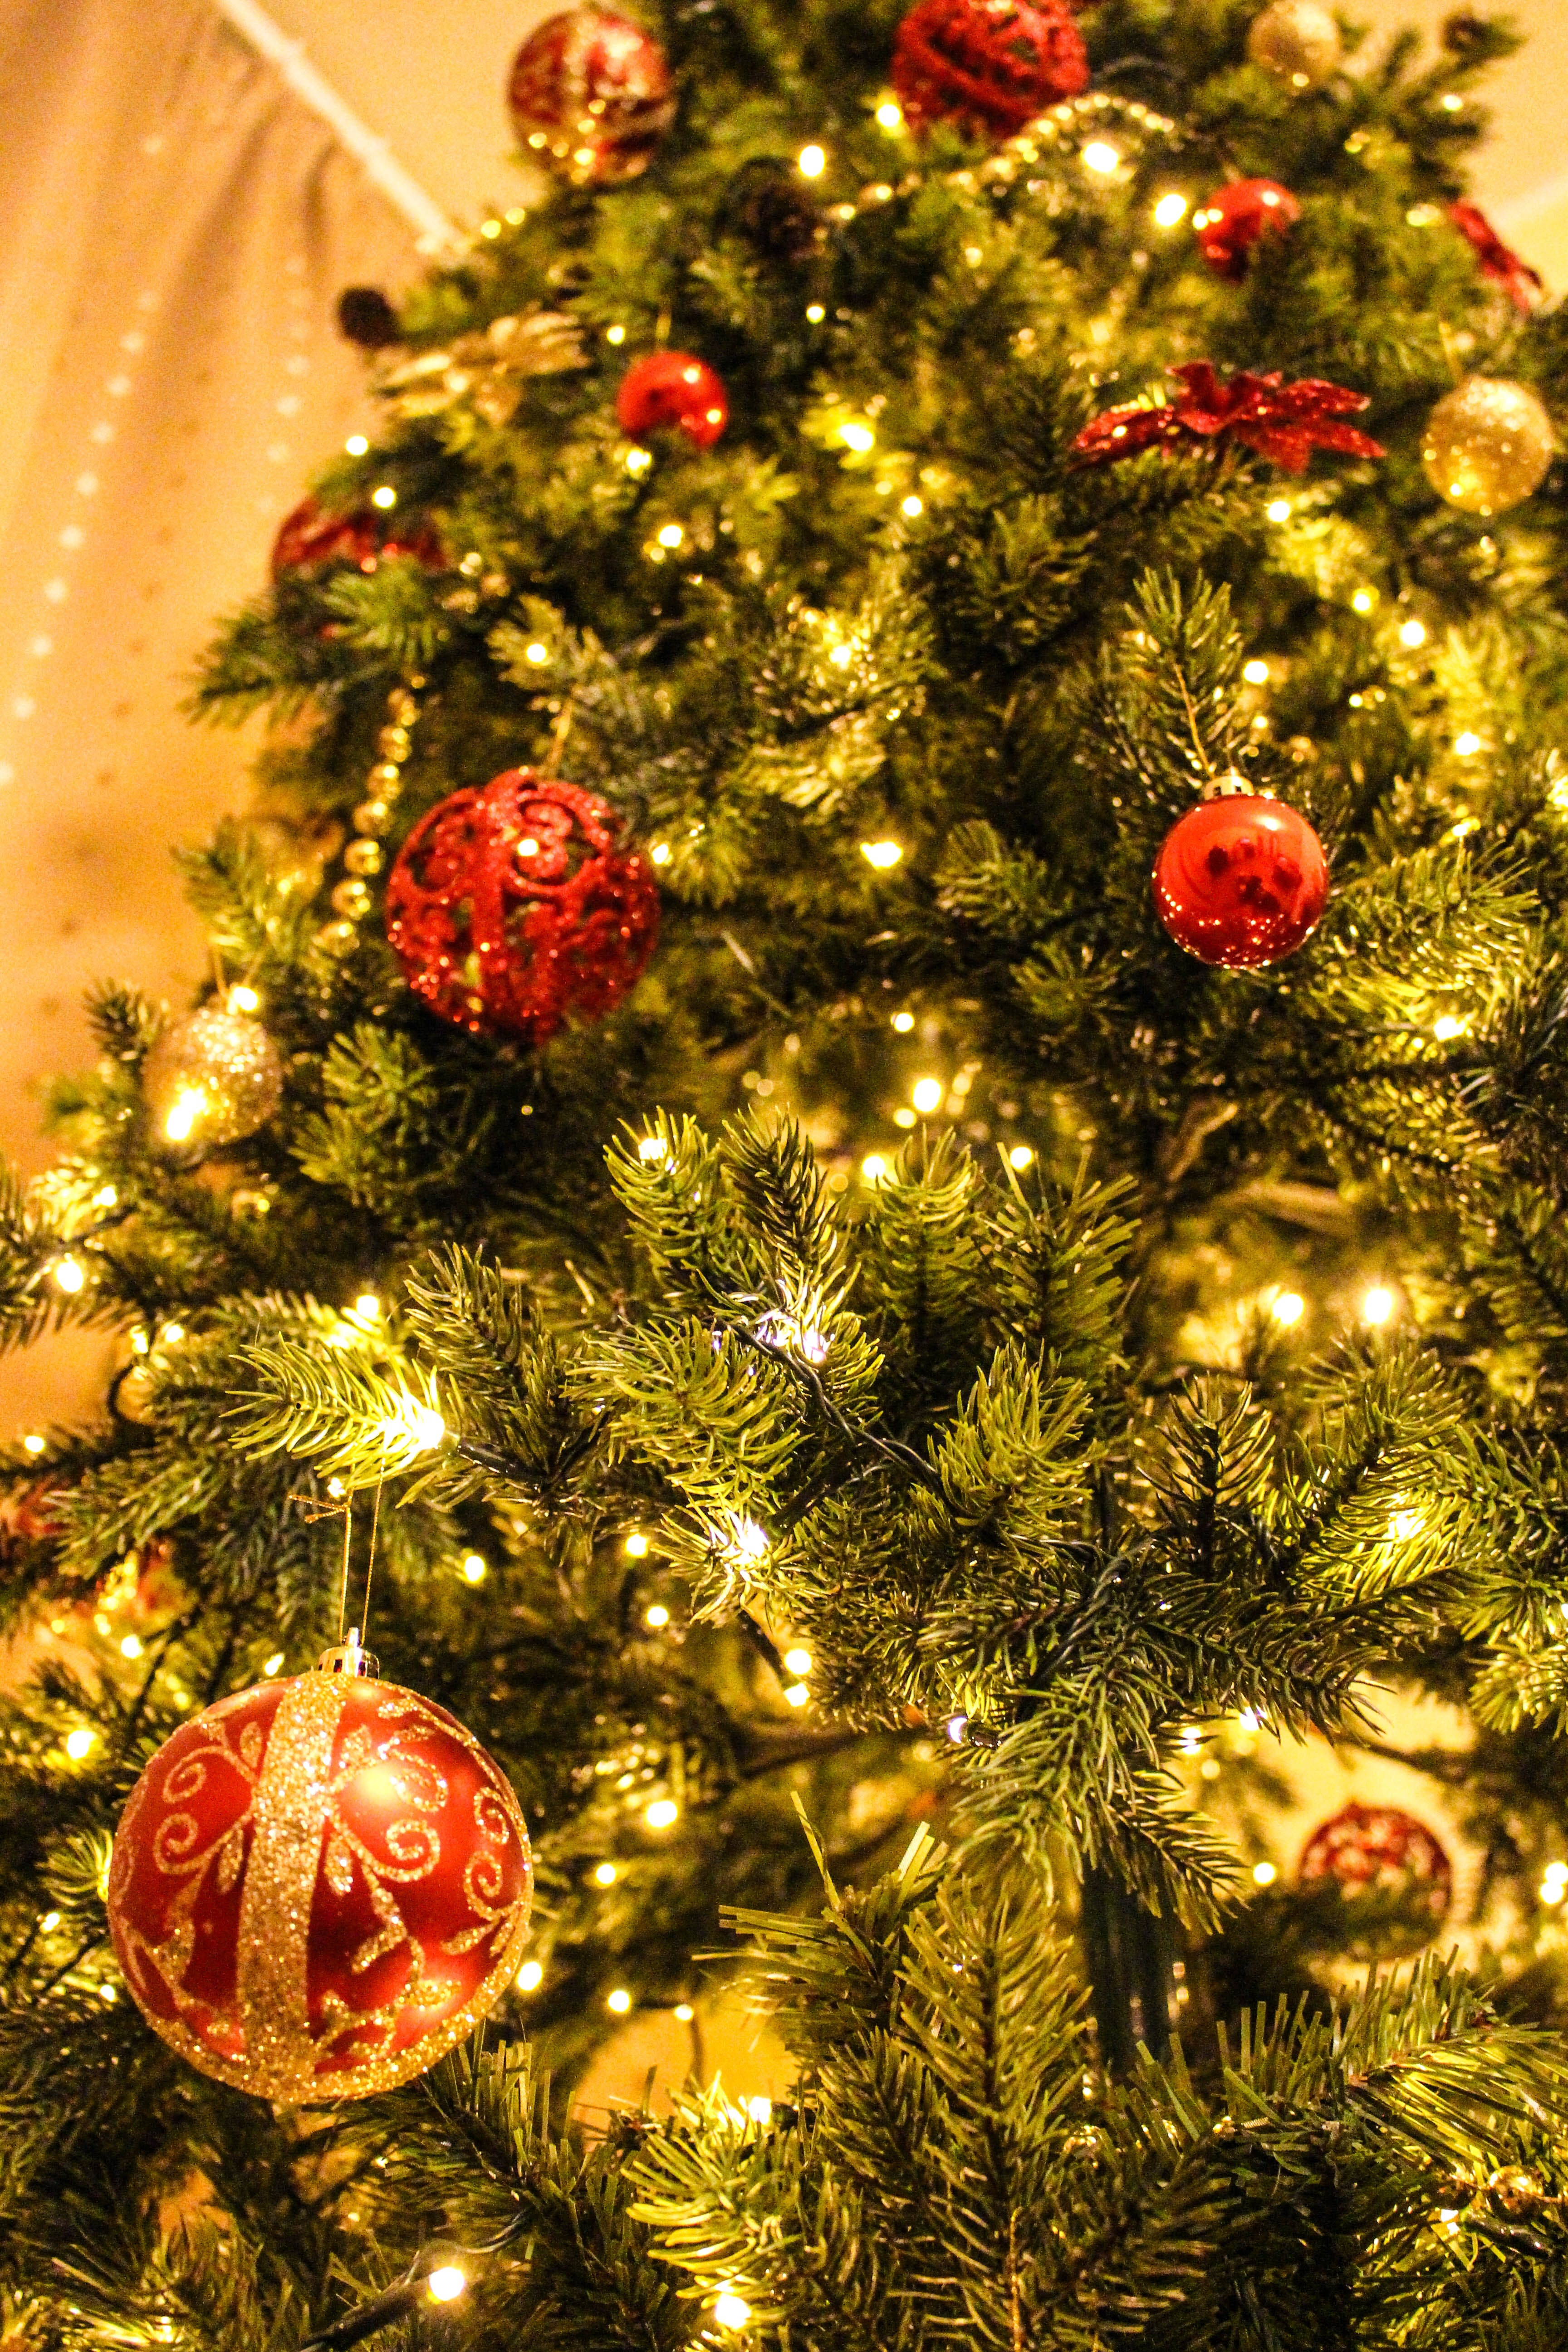 Baubles Hanged on Christmas Tree